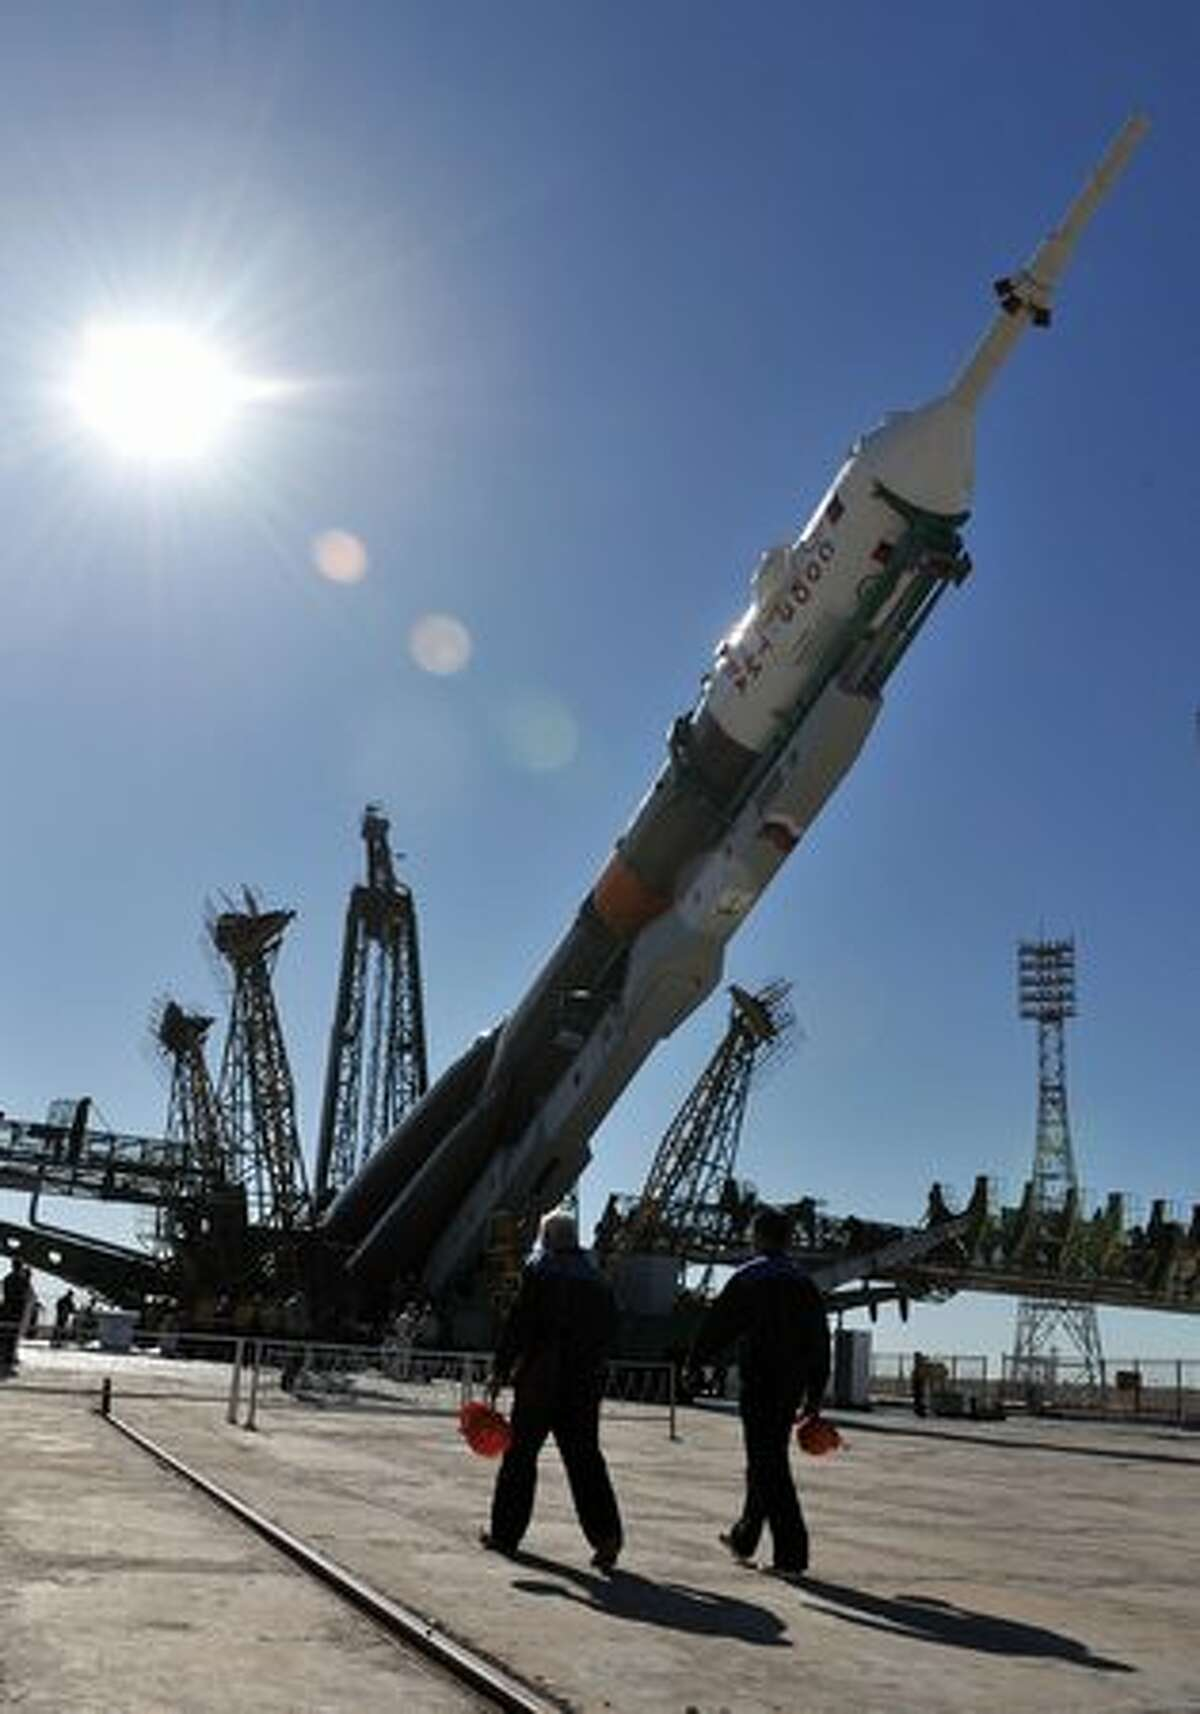 Russian Soyuz TMA-19 spacecraft is installed on its launch pad at the Baikonur Cosmodrome in Kazakhstan.